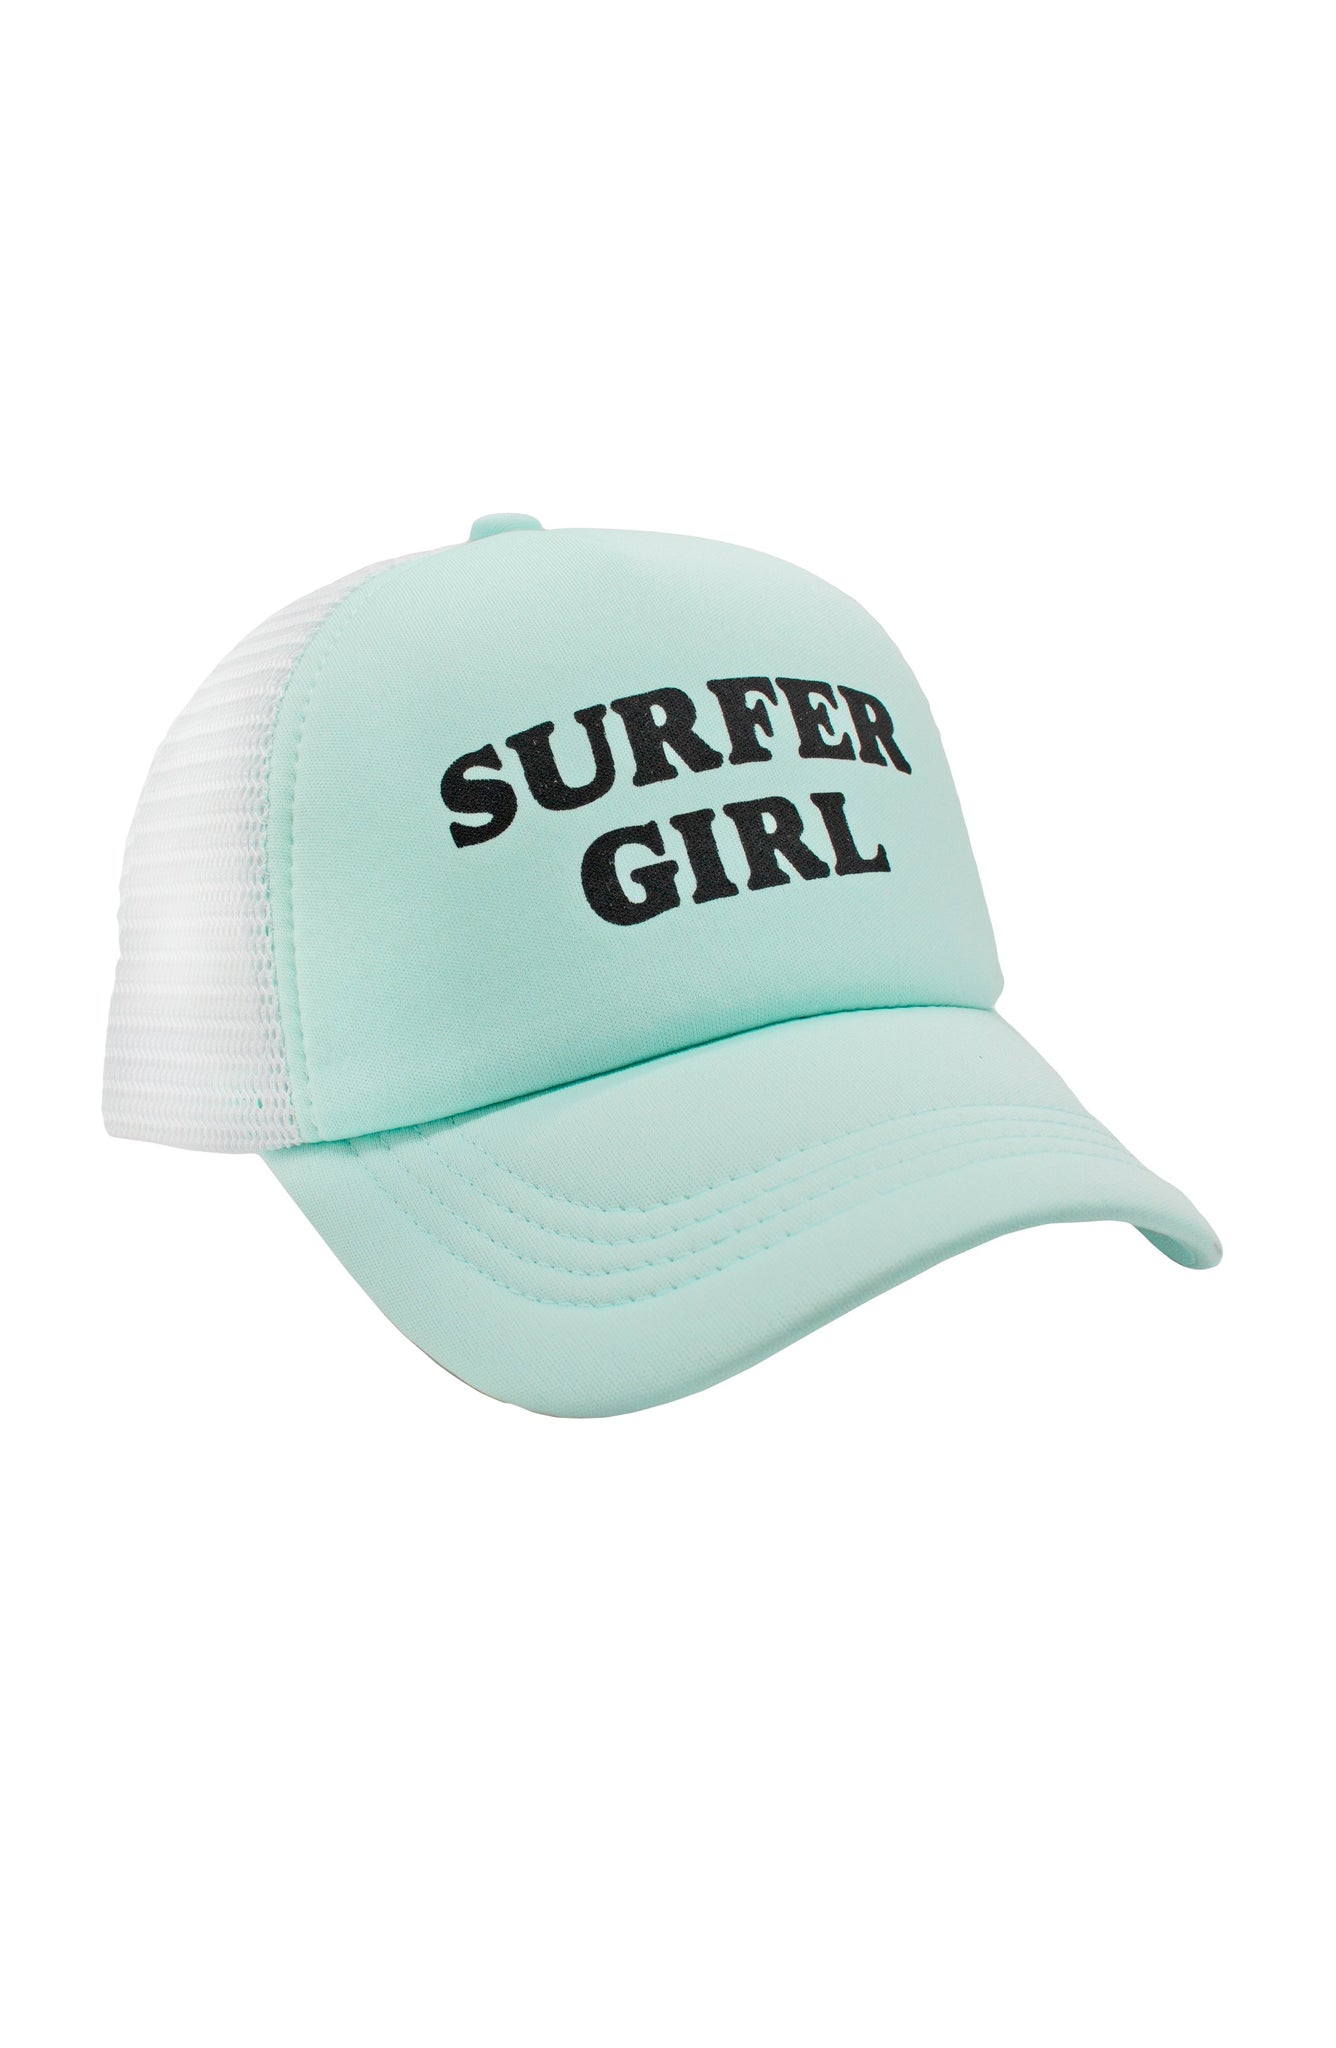 Feather 4 Arrow - Surfer Girl Hat